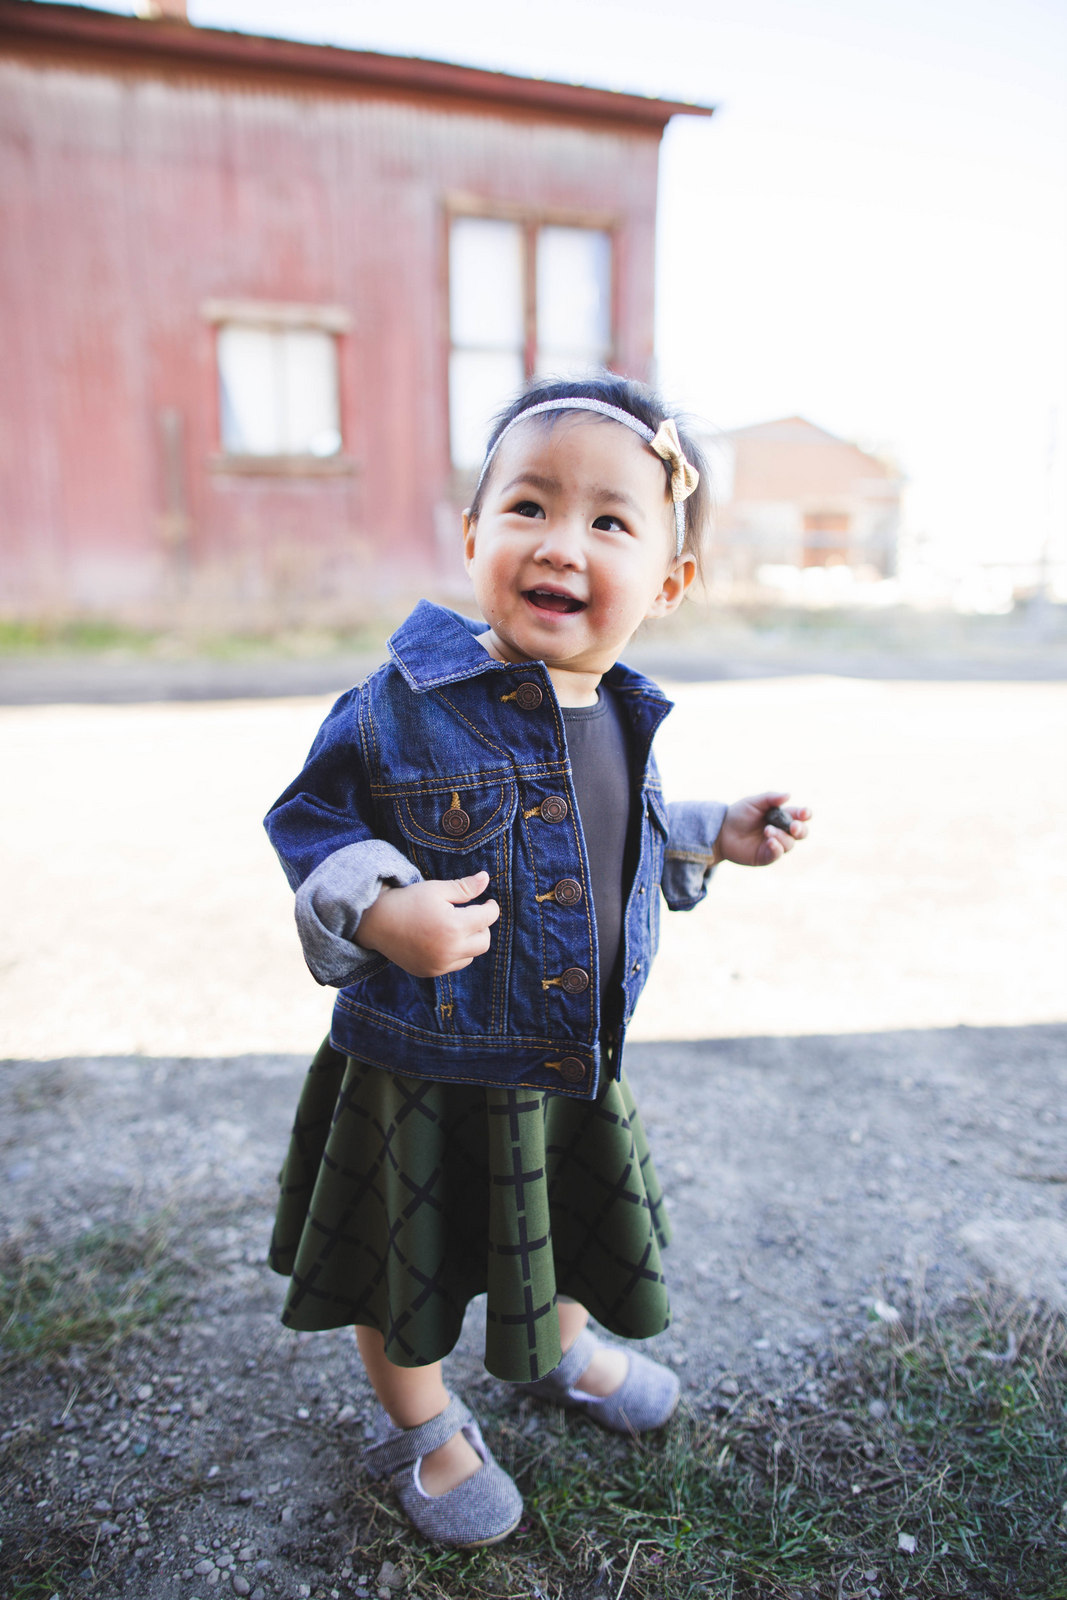 Jean jacket for babies